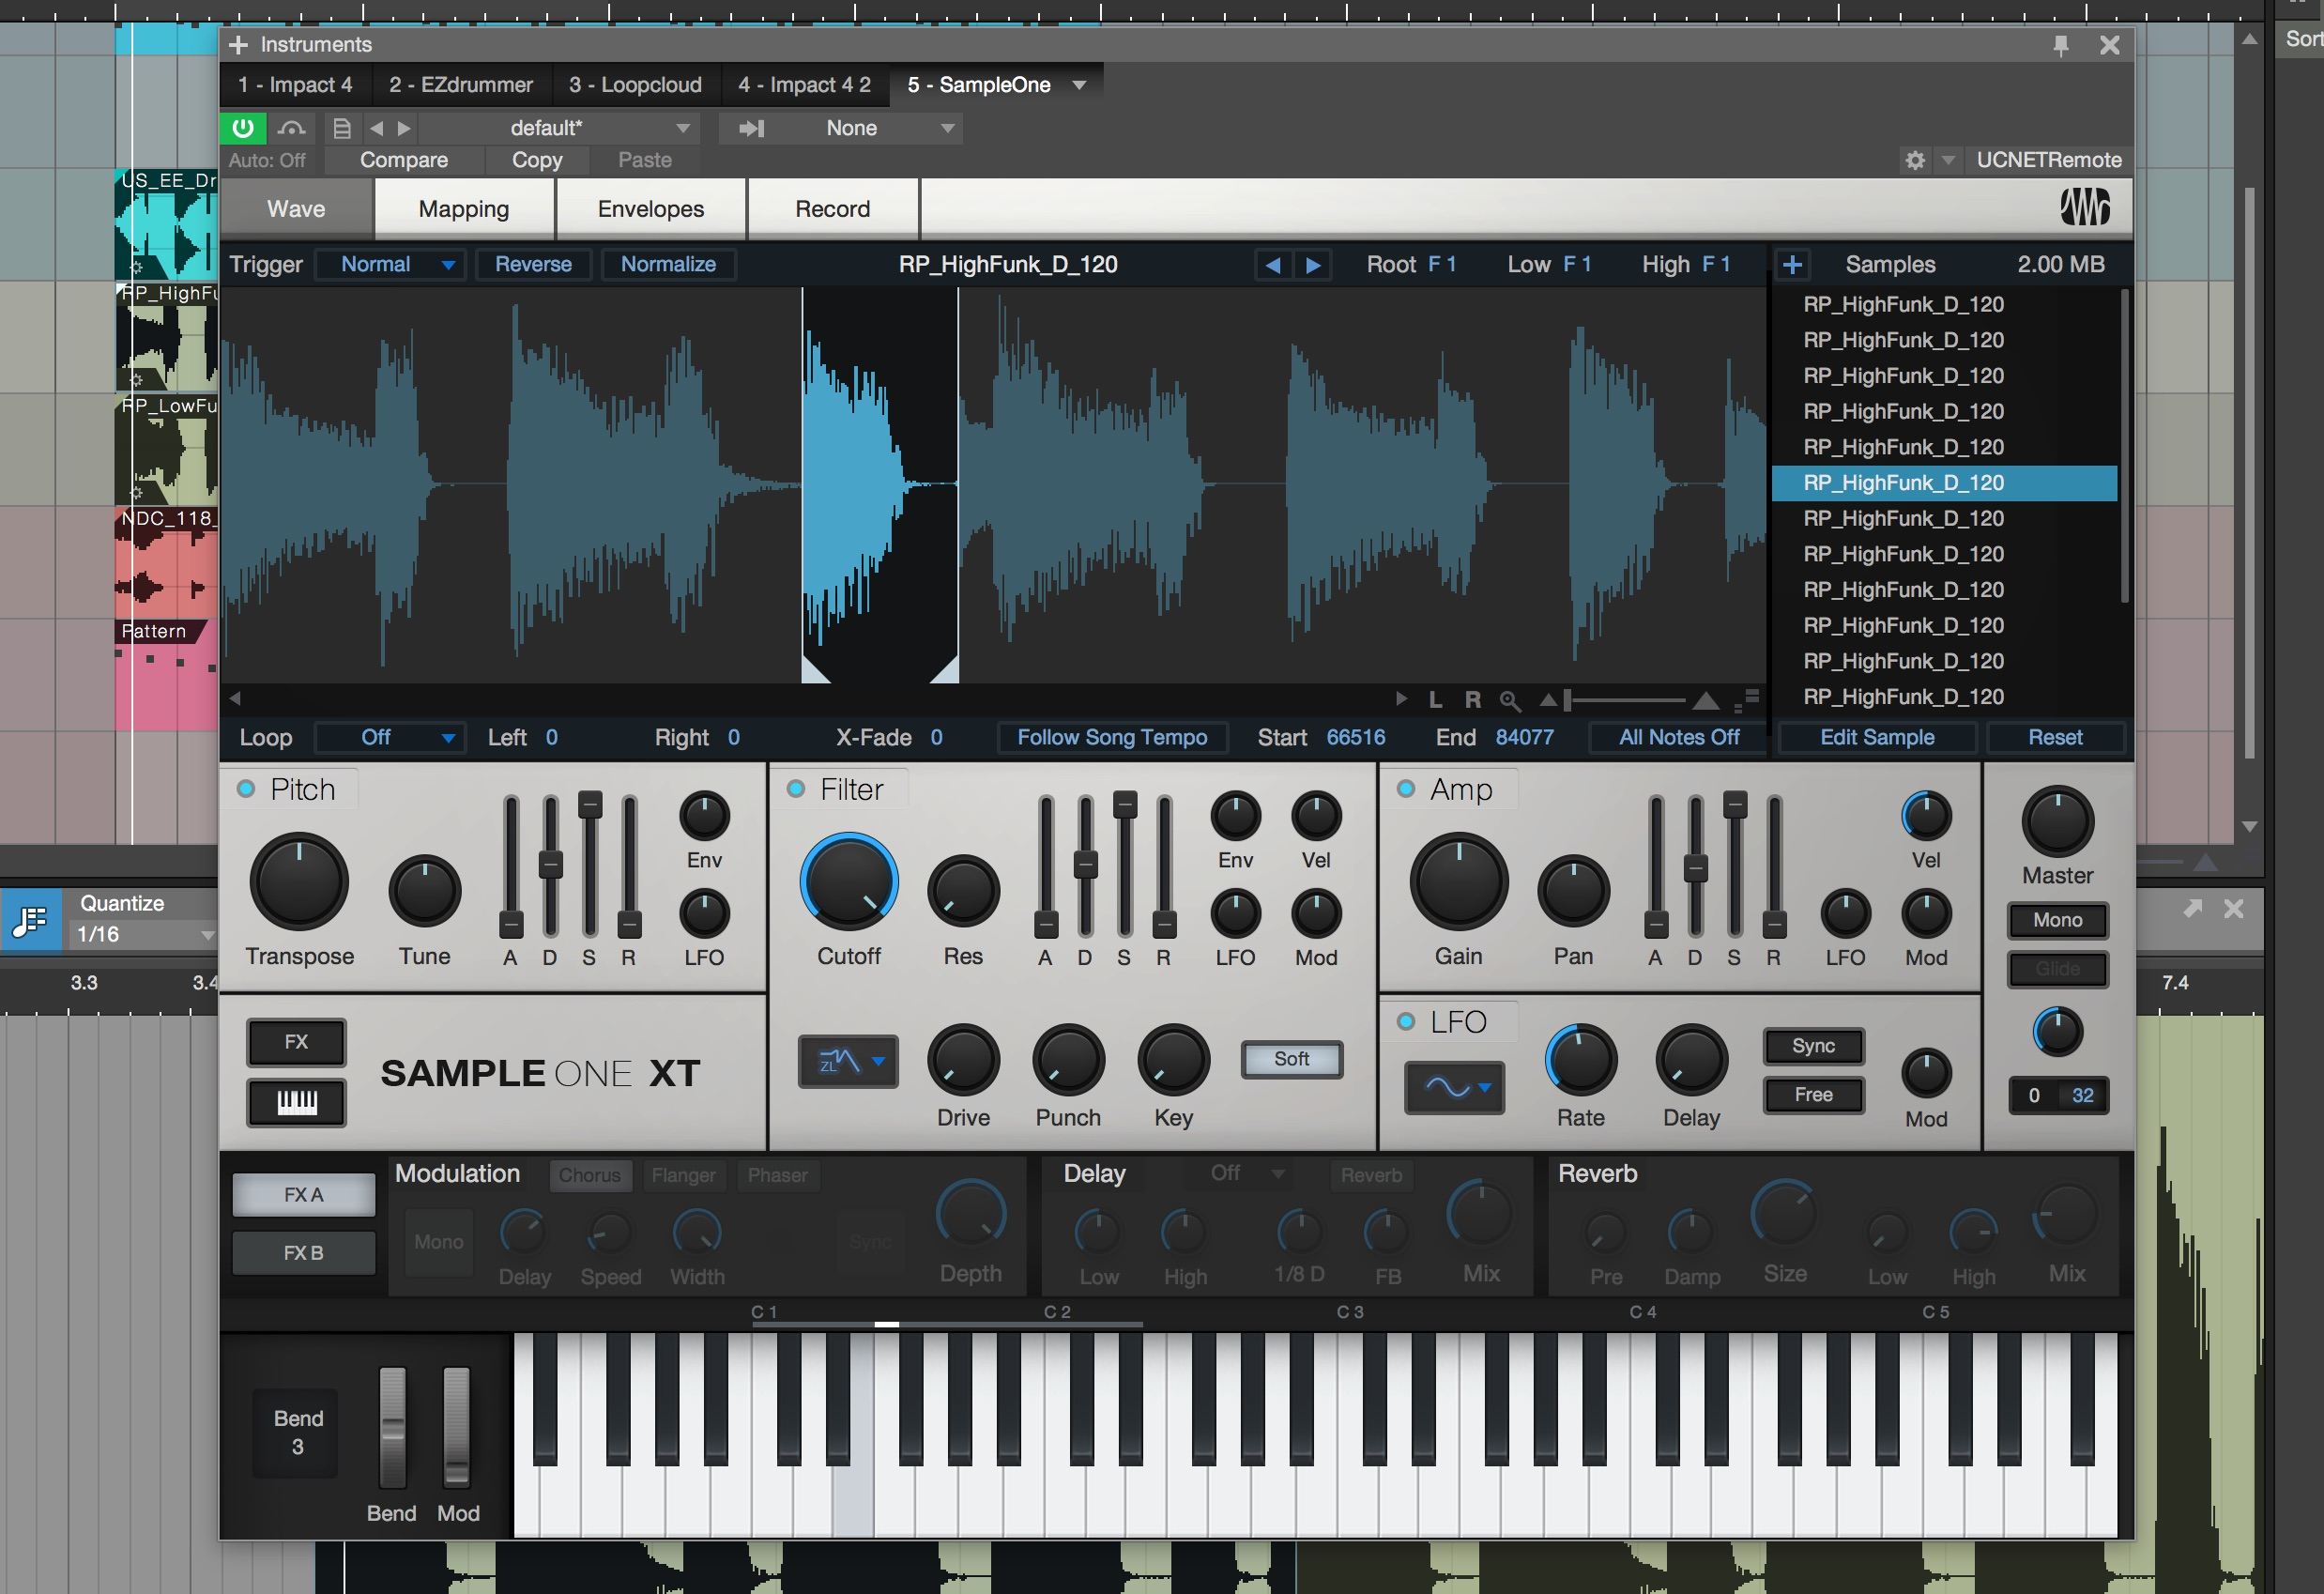 Studio One 4 - PreSonus Announce New Version With Chord